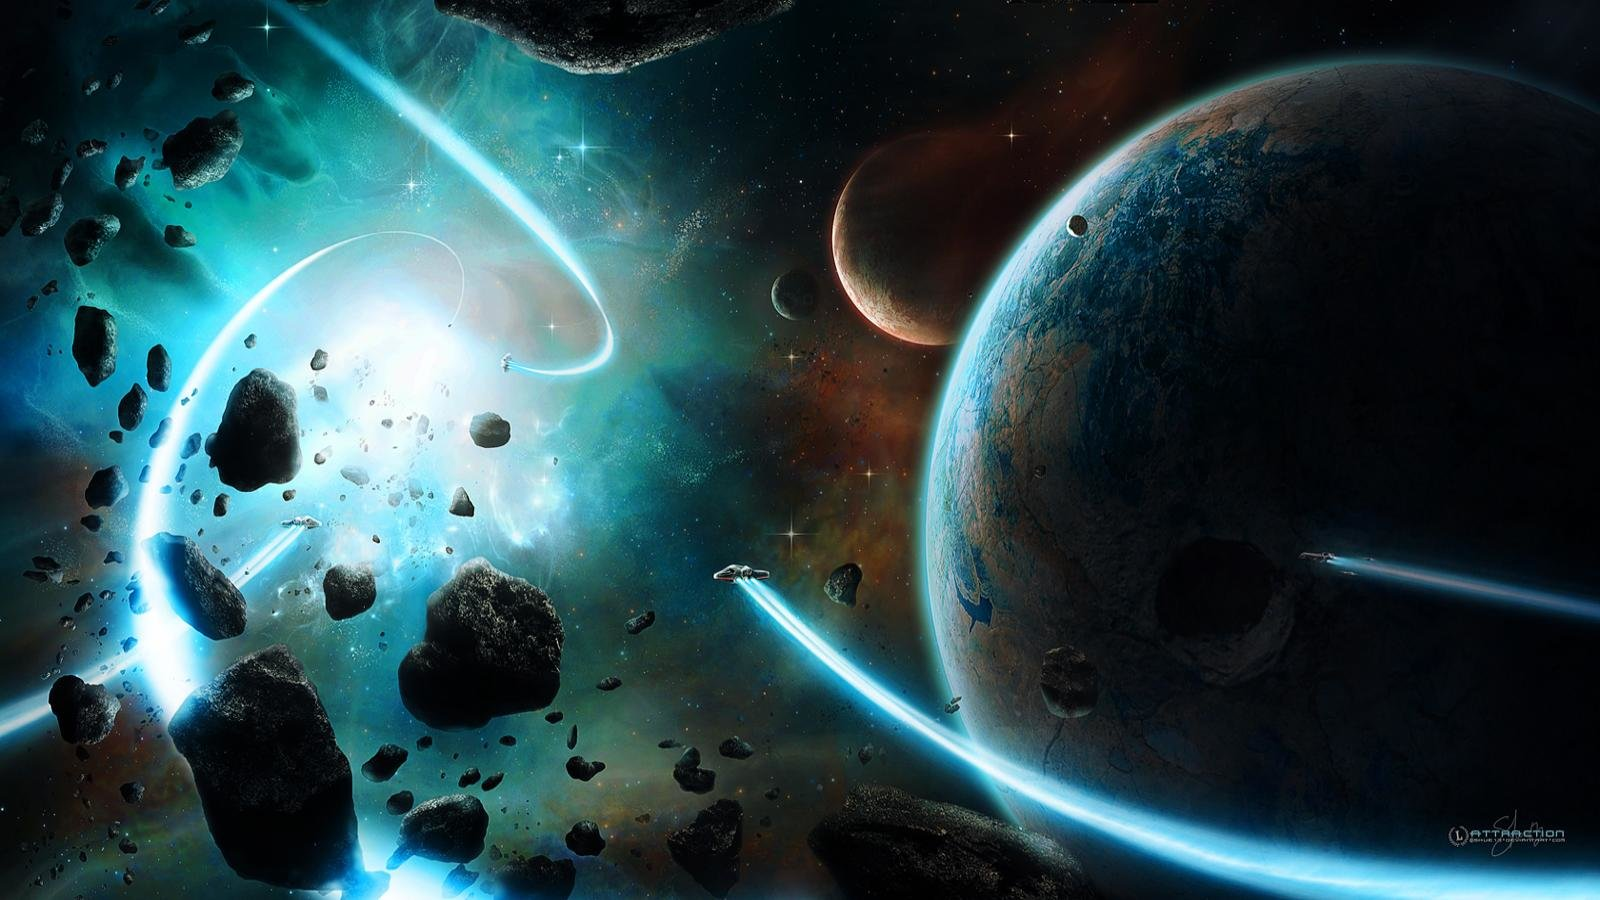 Cool Space Wallpapers 1600x900 Desktop Backgrounds